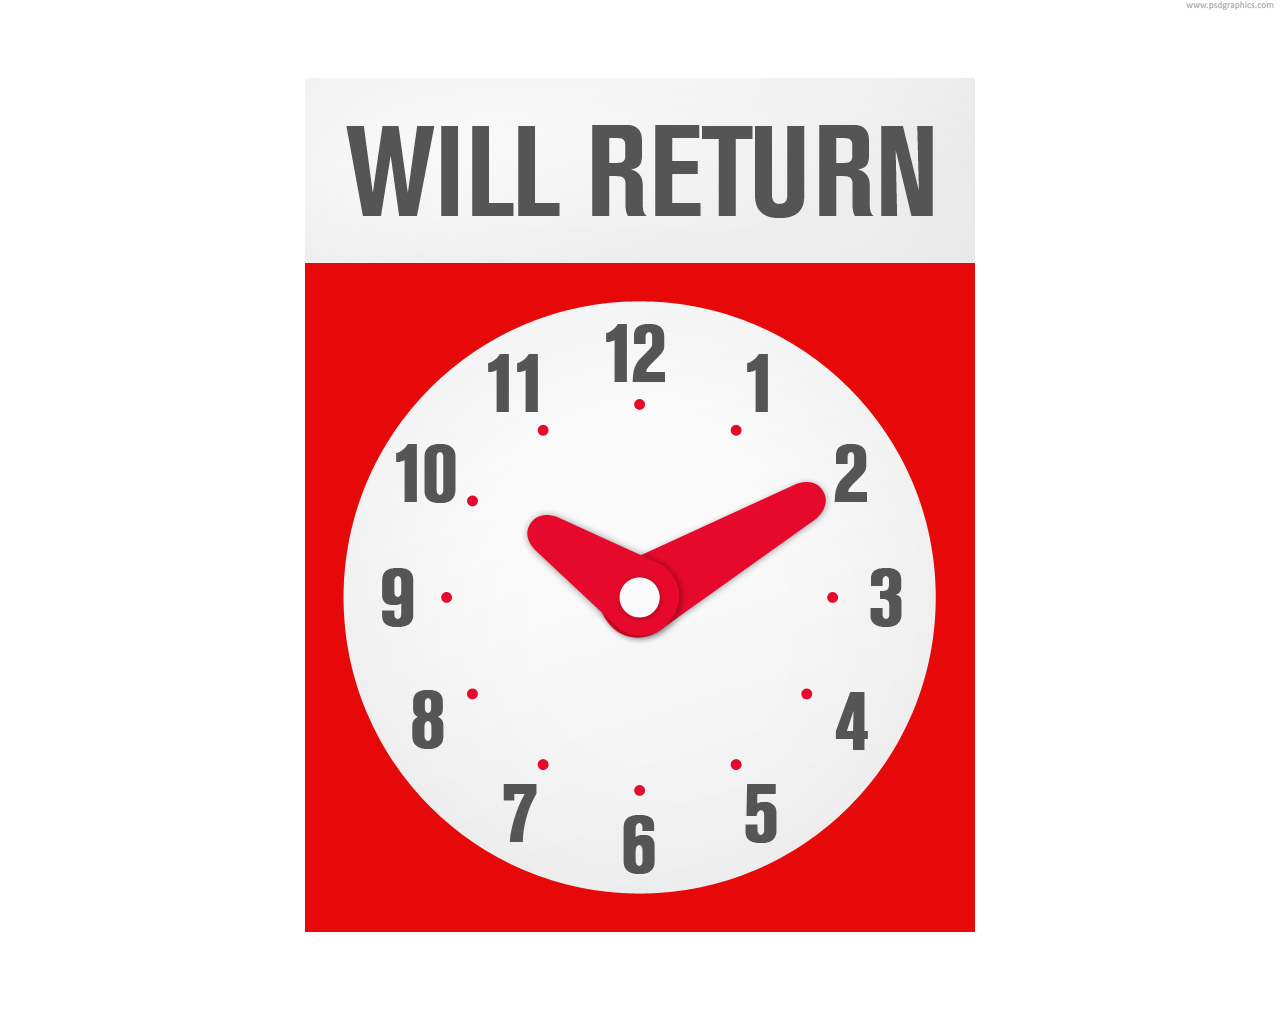 picture regarding Will Return Sign Printable named Will return indicator (PSD) PSDGraphics